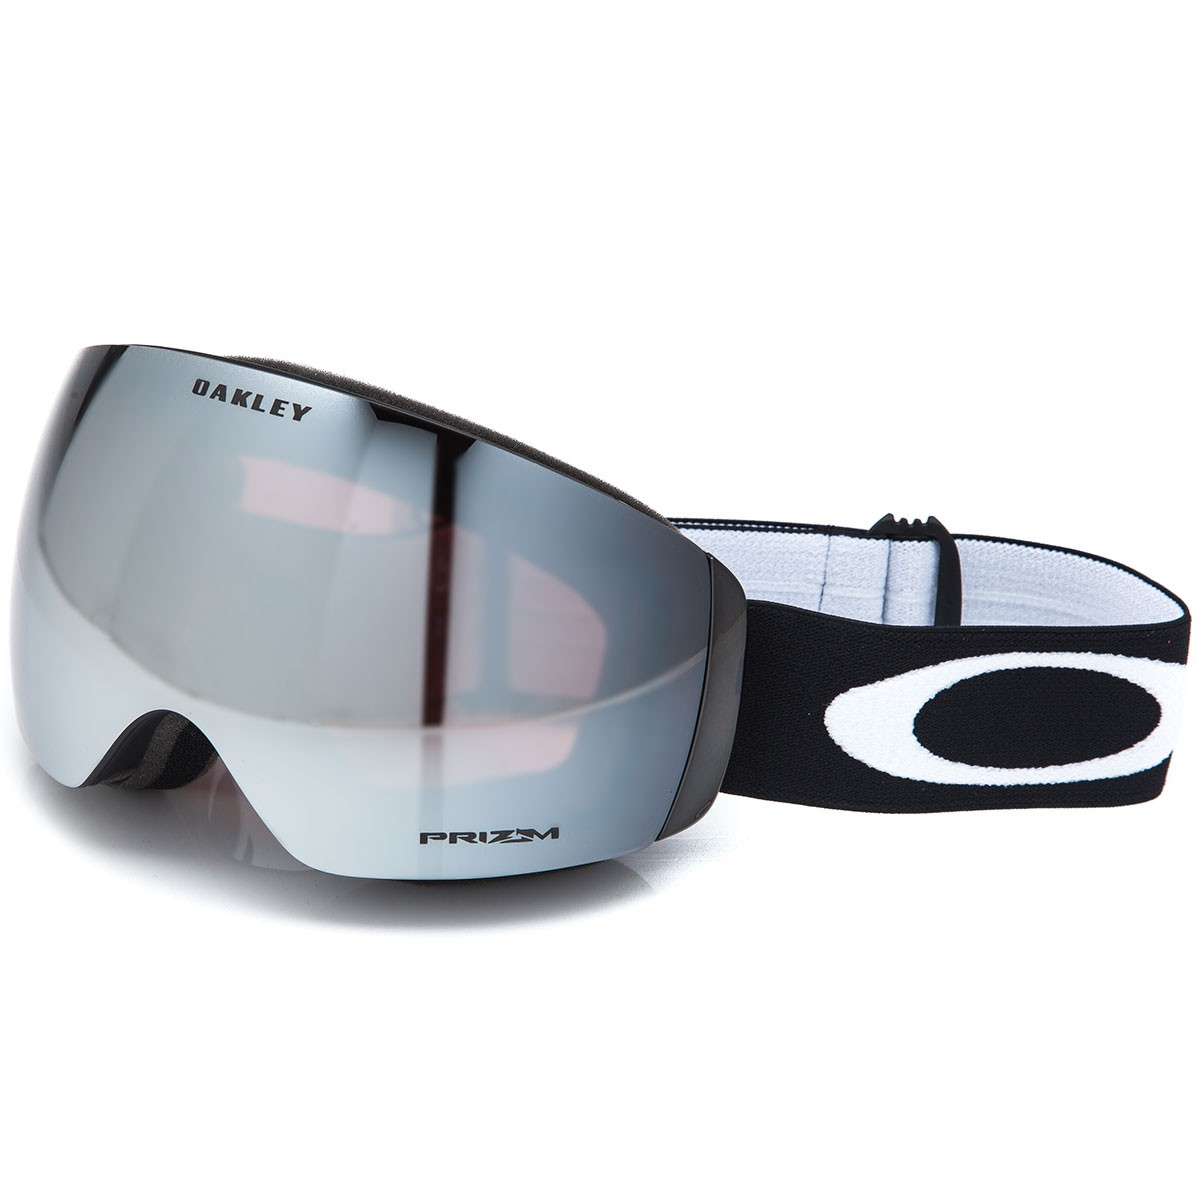 oakley flight deck sale  Flight Deck XM Snowboard Goggles - Matte Black with Prizm Black